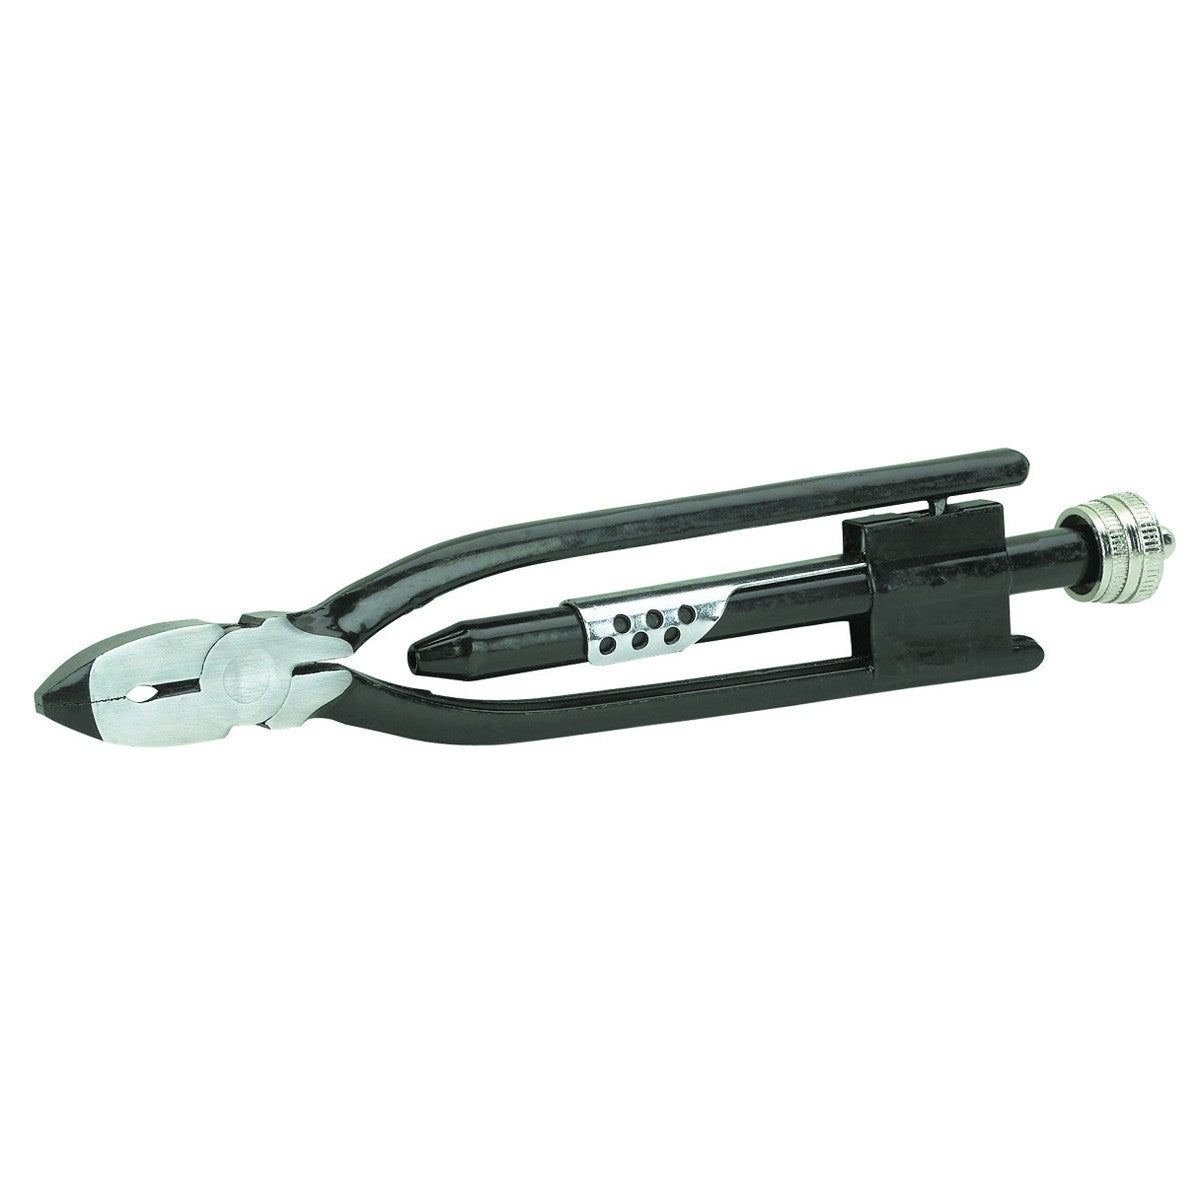 Safty Wire Pliers